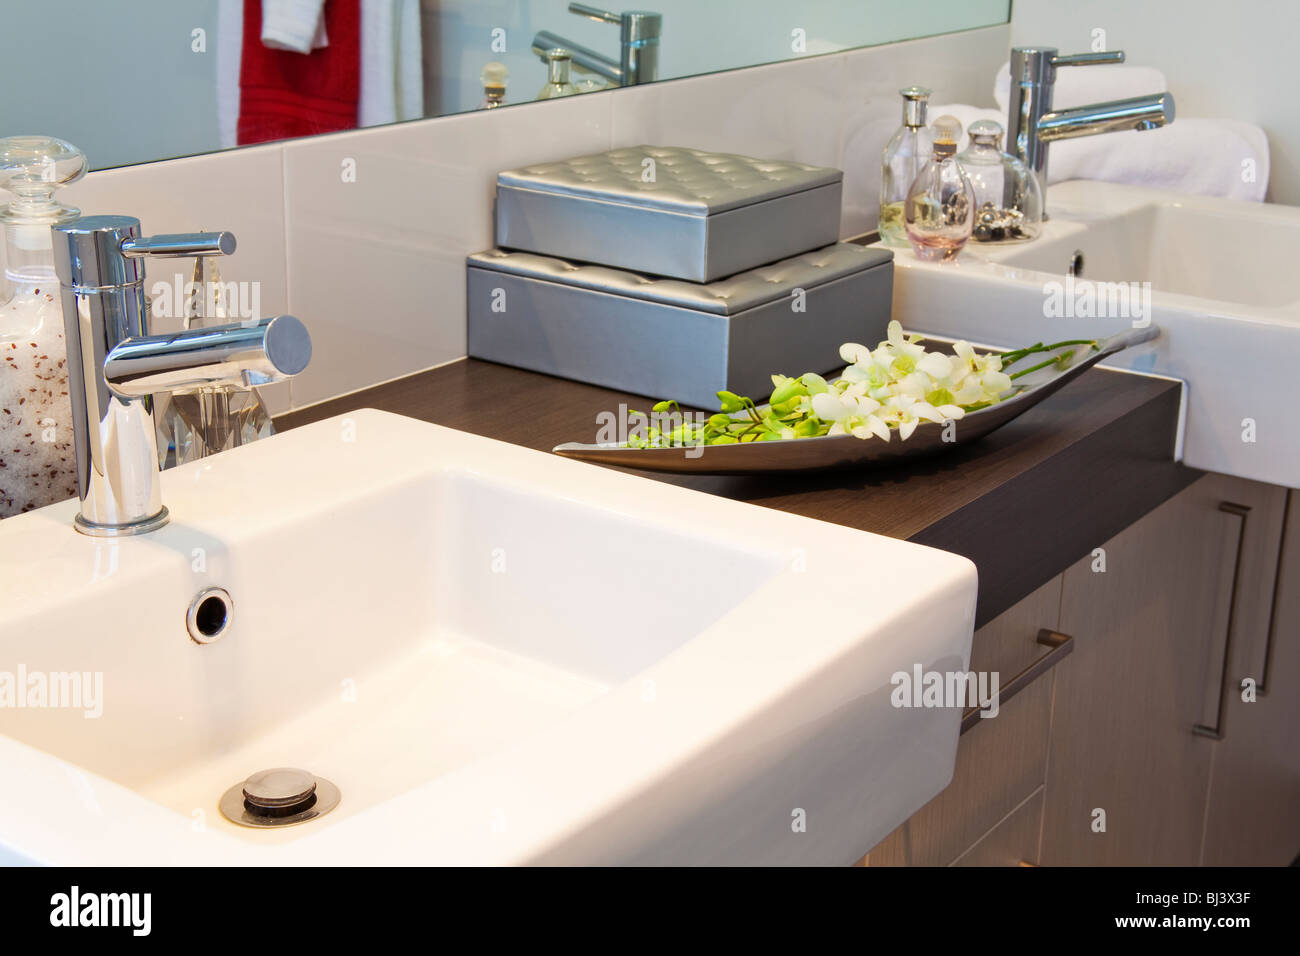 bathroom detail in modern townhouse - Stock Image